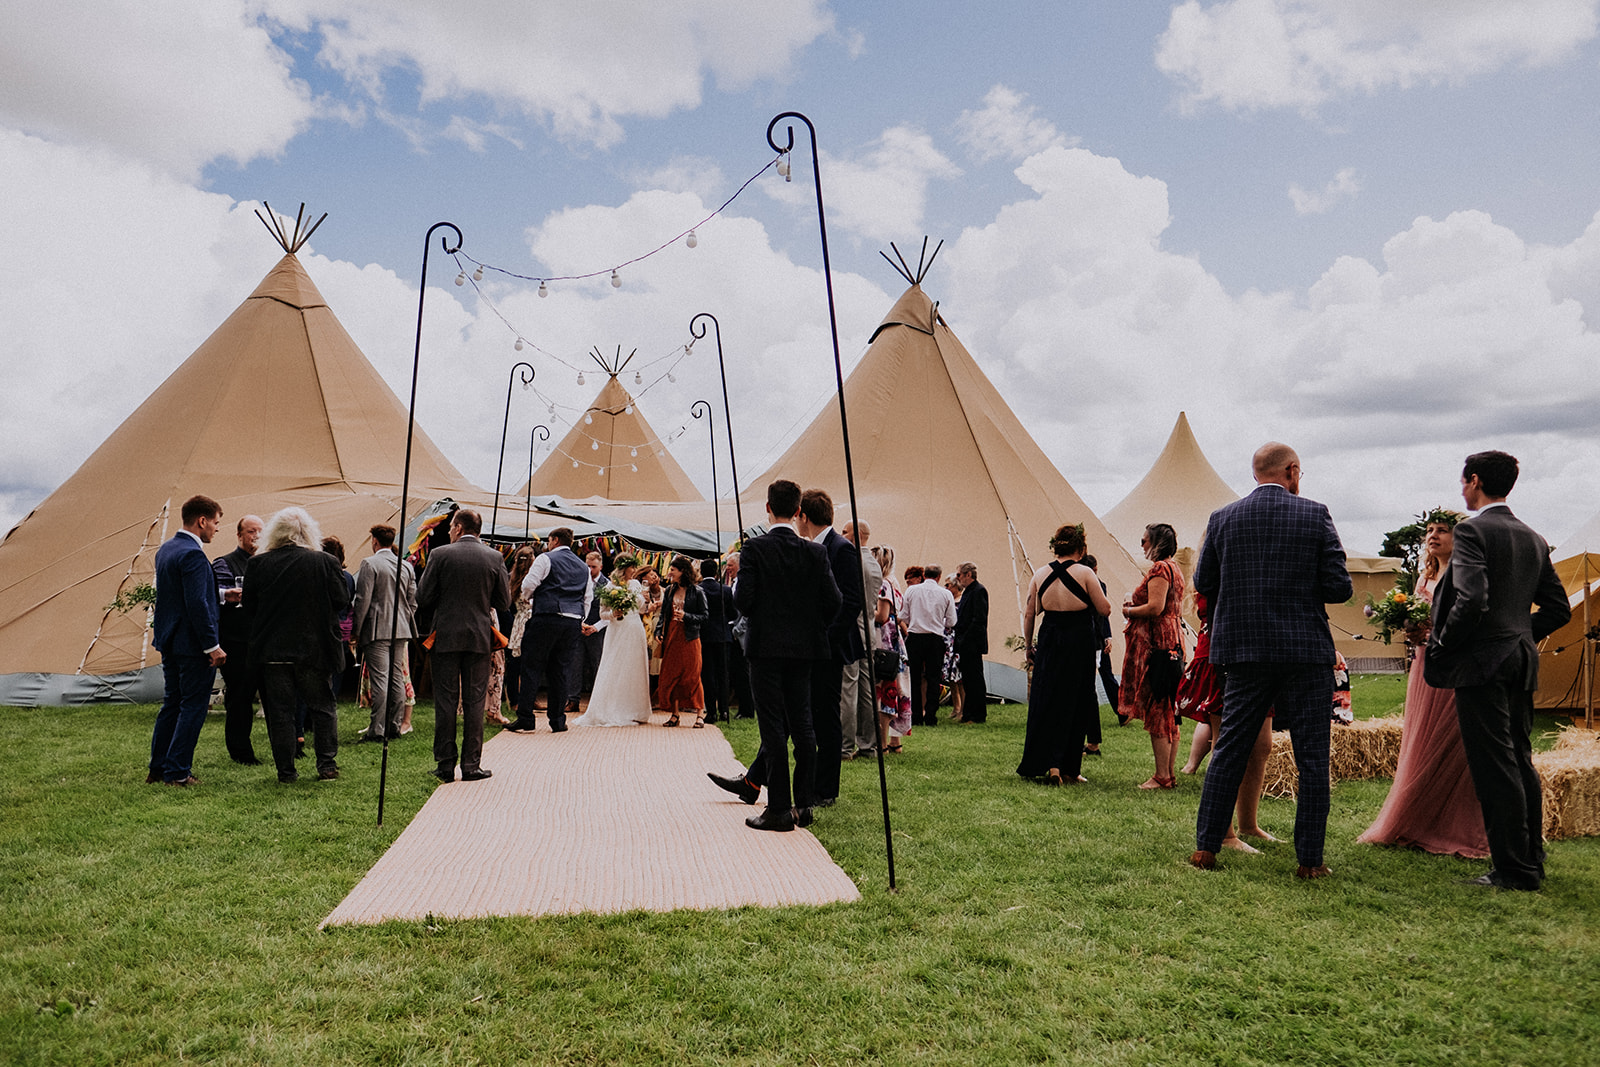 Cattows Farm Wedding with guests enjoying the space outside